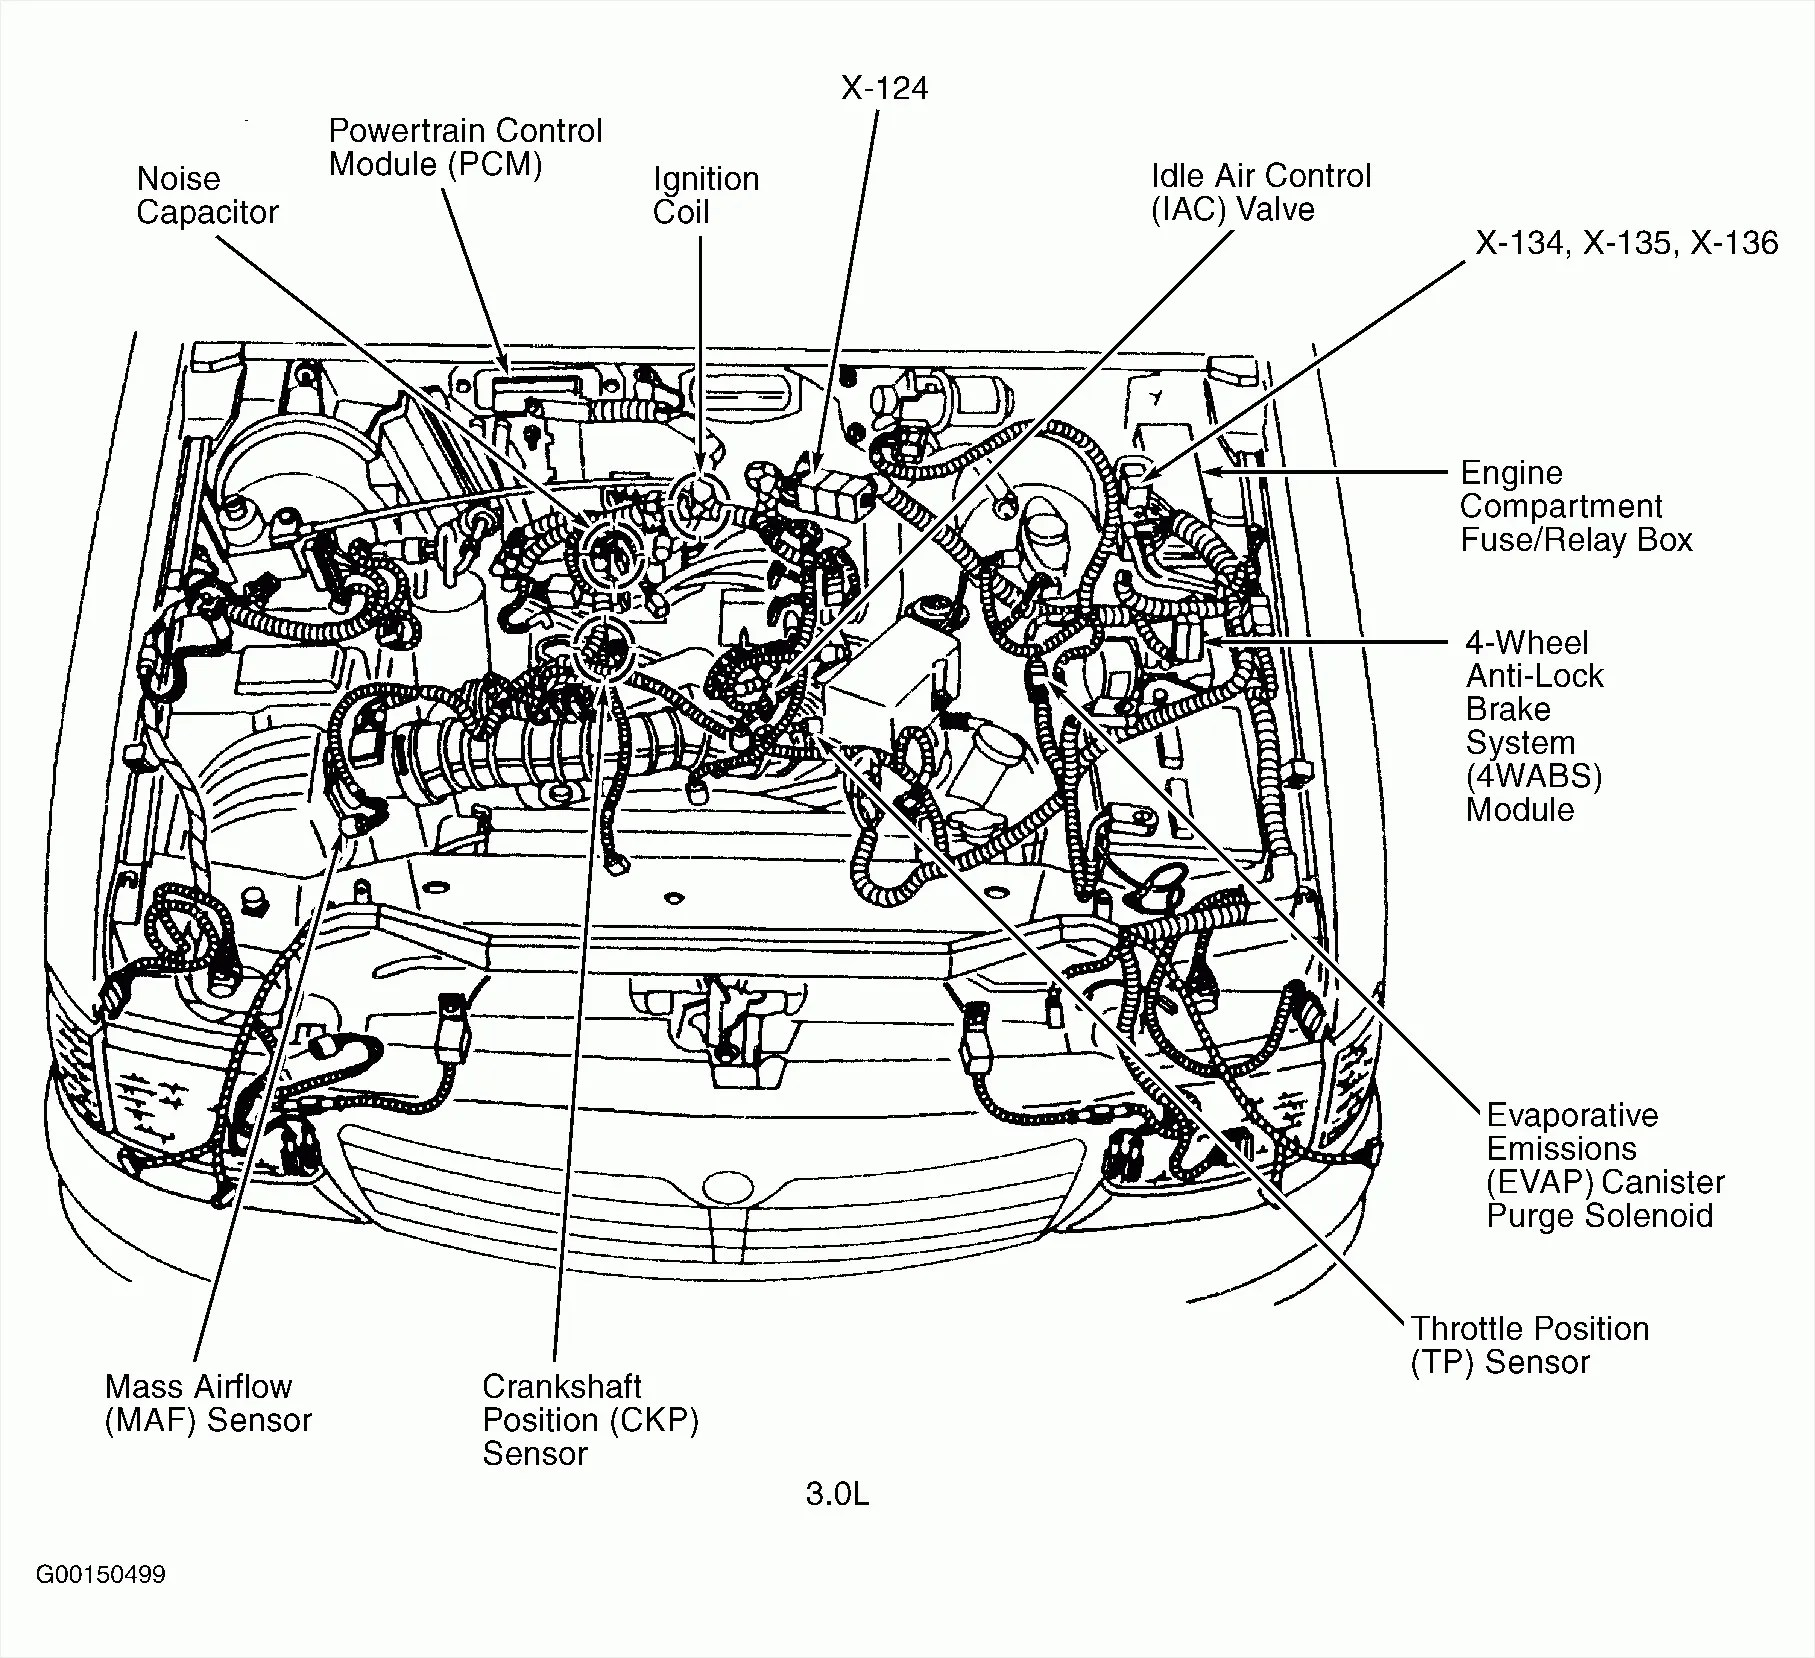 hight resolution of pontiac engine diagrams wiring diagram yer 2008 3 5 v6 pontiac engine diagrams wiring diagram database